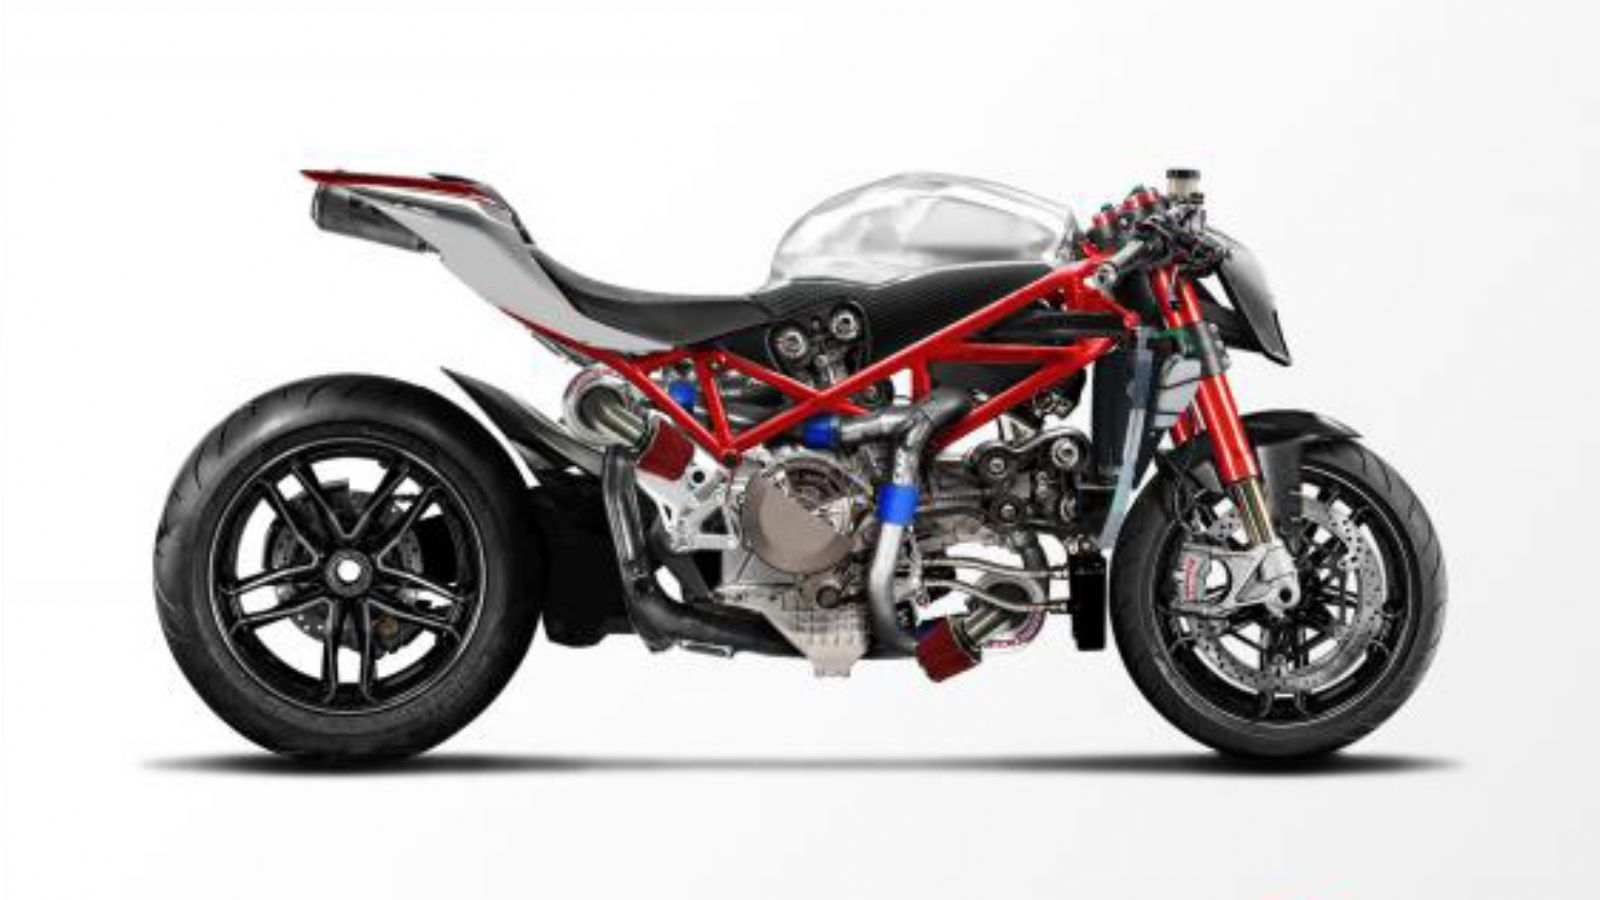 ducati in pursuit of magic case Part b is a brief epilogue of the plan that minoli presented to investors.